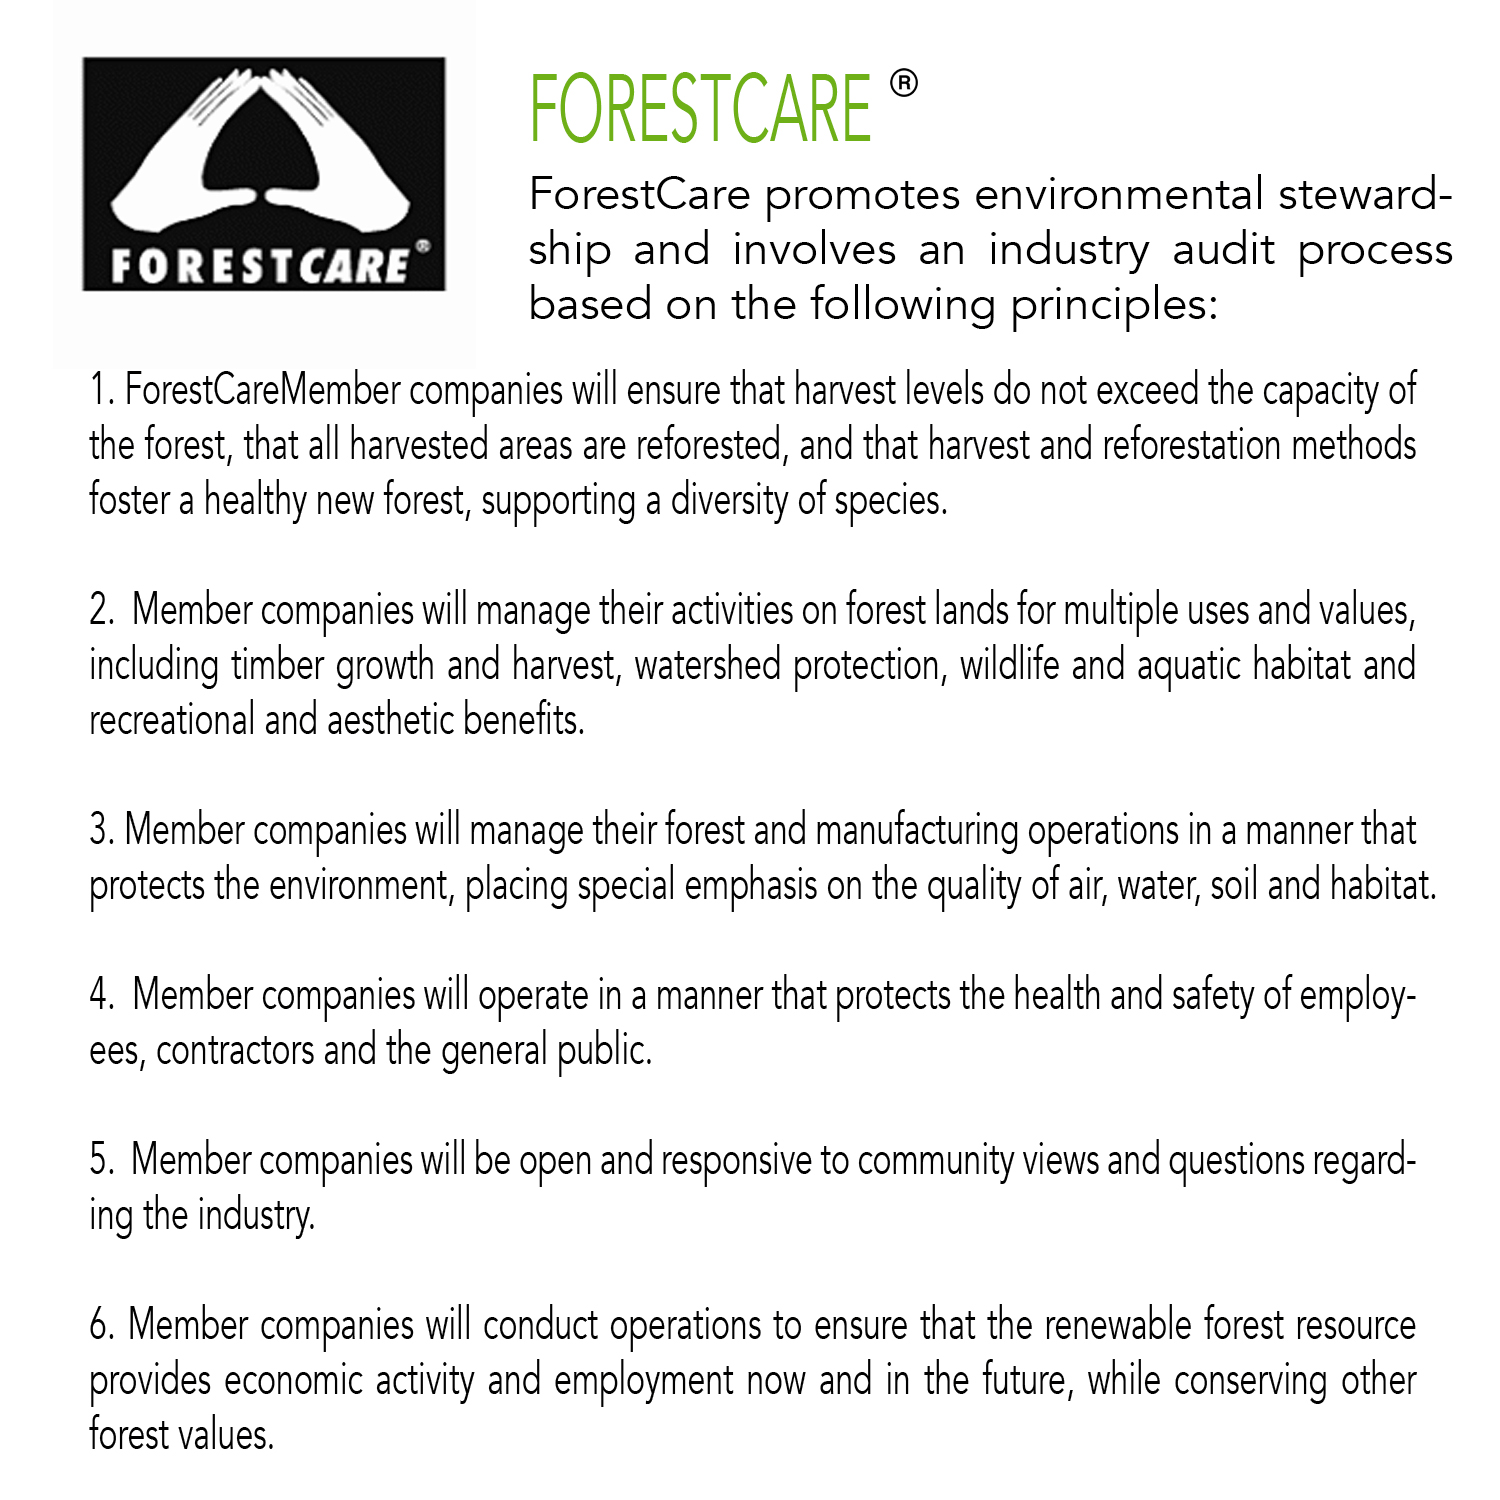 Forestcare